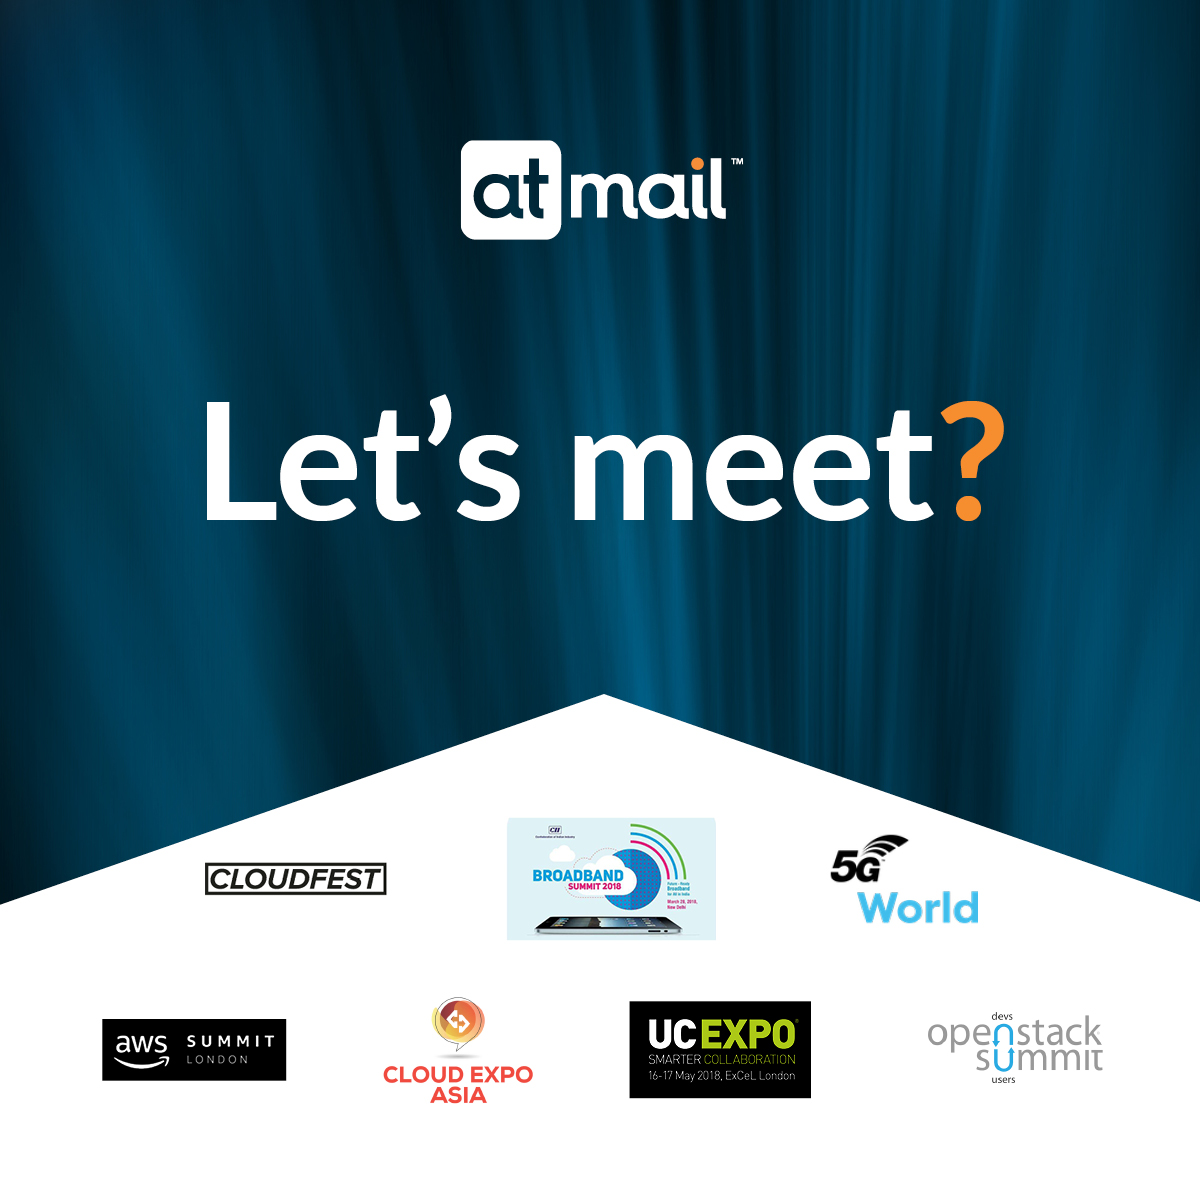 atmail events 2018 - email events - email providers - email service providers